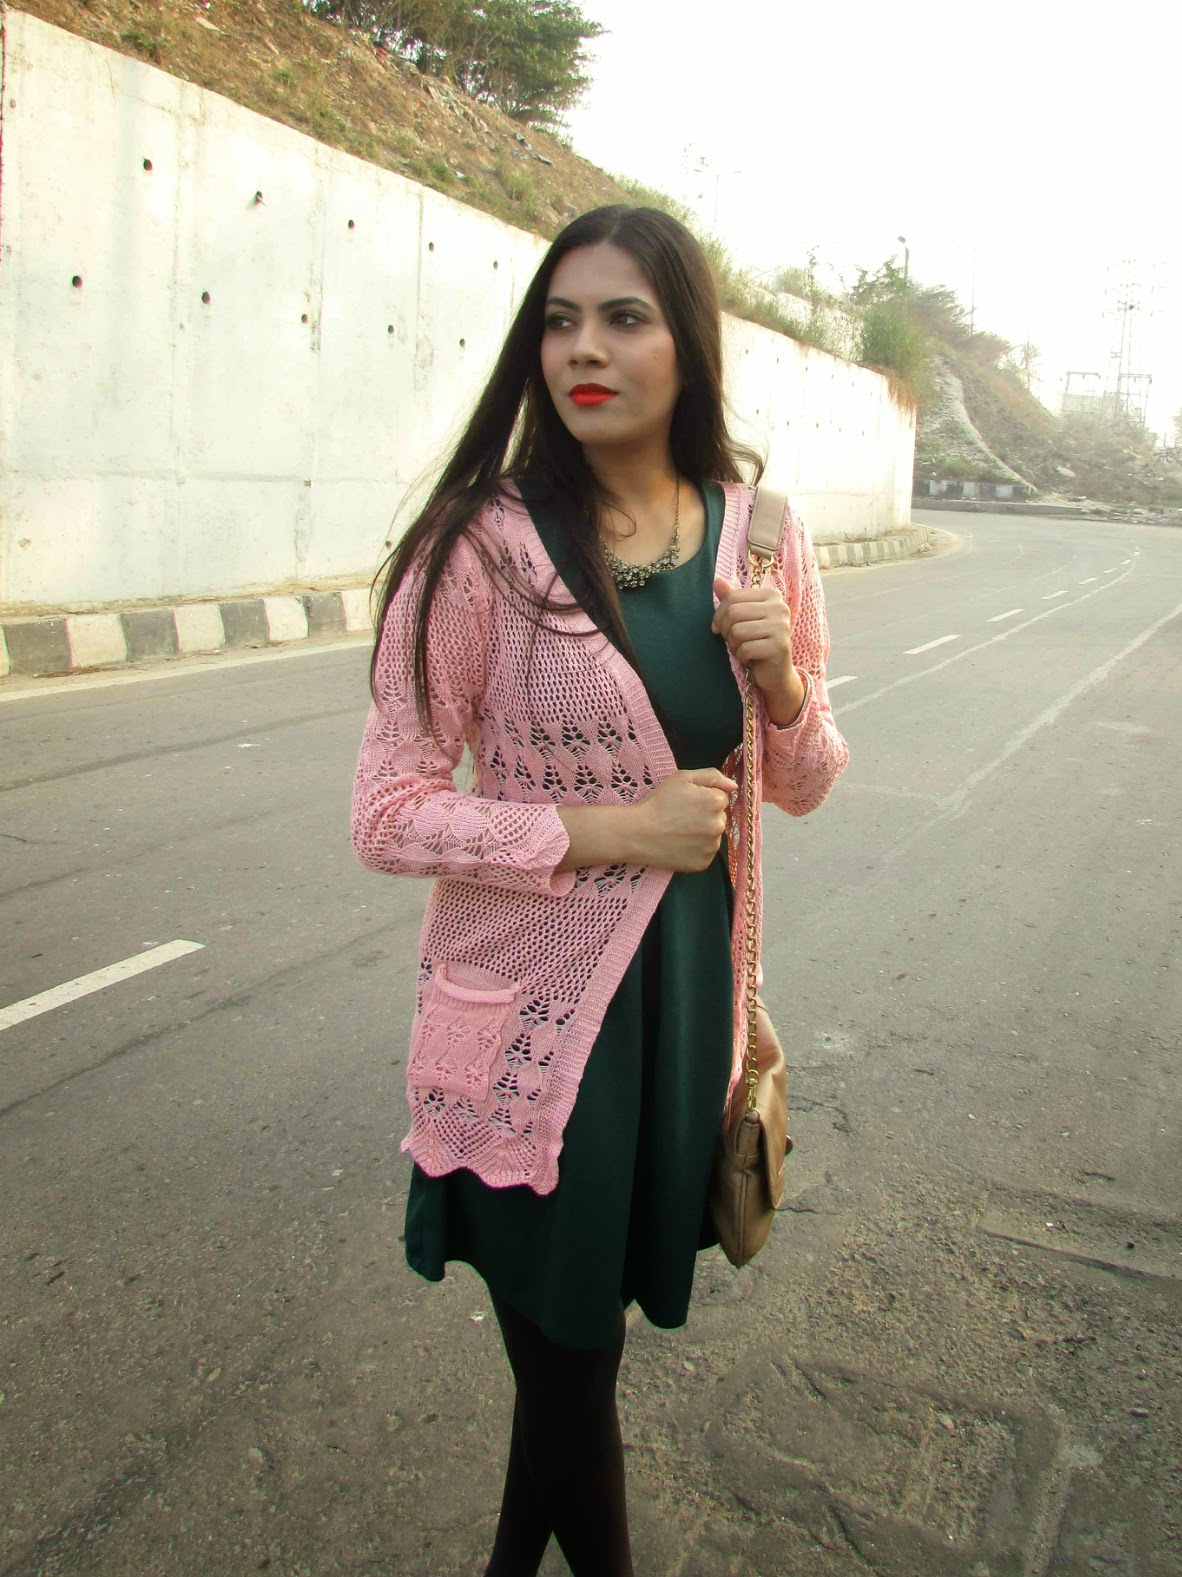 long cardigan, long cardigan online, pink long cardigan, long cardigan online, fashion, winter ootd, echopaul, echopaul review, how to style long cardigan, red lips,beauty , fashion,beauty and fashion,beauty blog, fashion blog , indian beauty blog,indian fashion blog, beauty and fashion blog, indian beauty and fashion blog, indian bloggers, indian beauty bloggers, indian fashion bloggers,indian bloggers online, top 10 indian bloggers, top indian bloggers,top 10 fashion bloggers, indian bloggers on blogspot,home remedies, how to